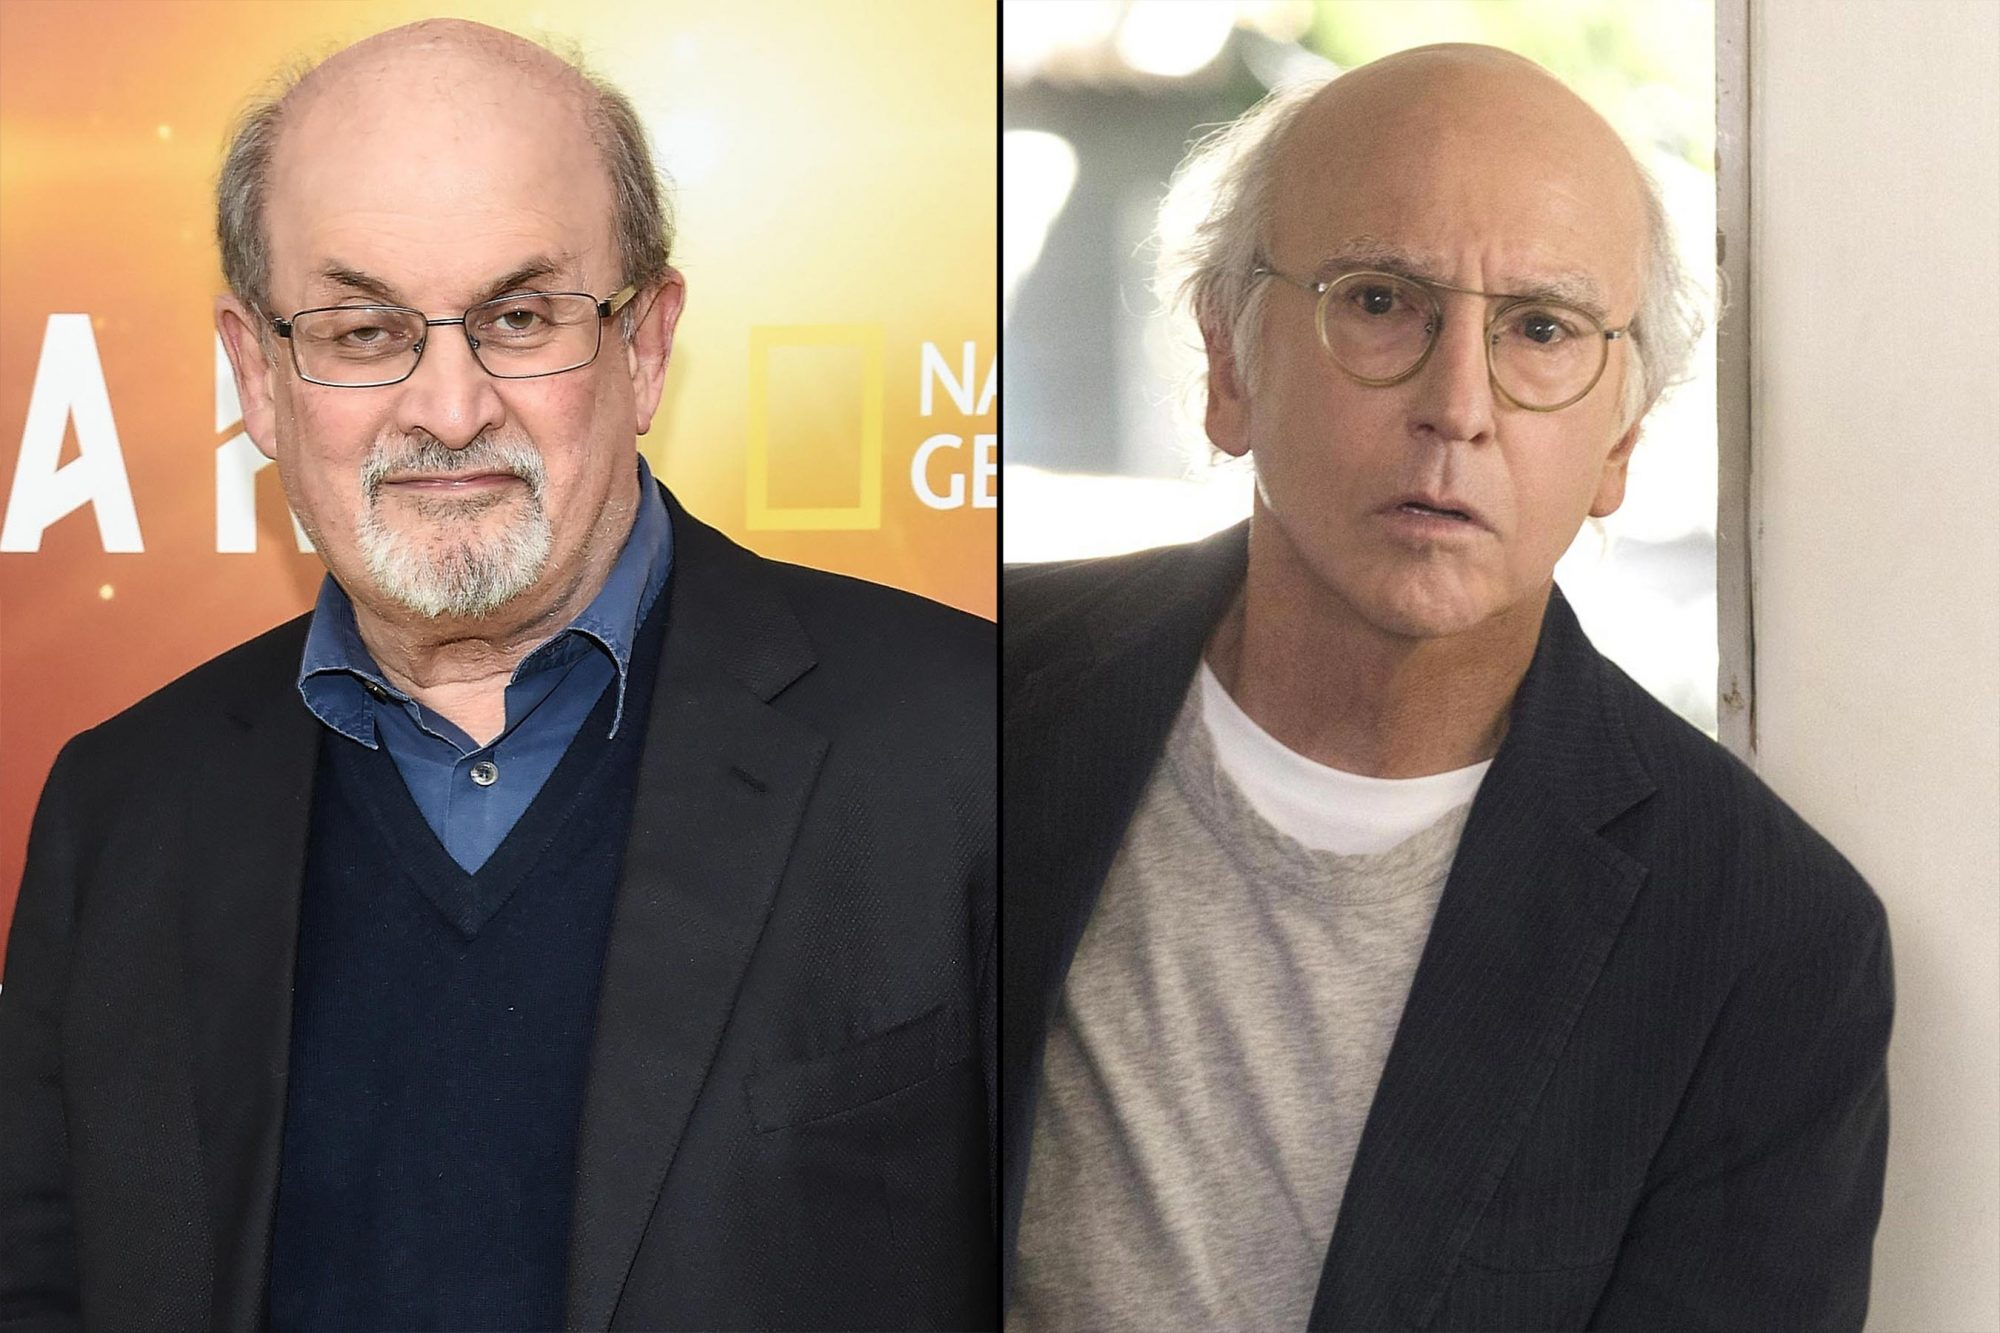 Salman-Rushdie-Curb-Your-Enthusiasm-2